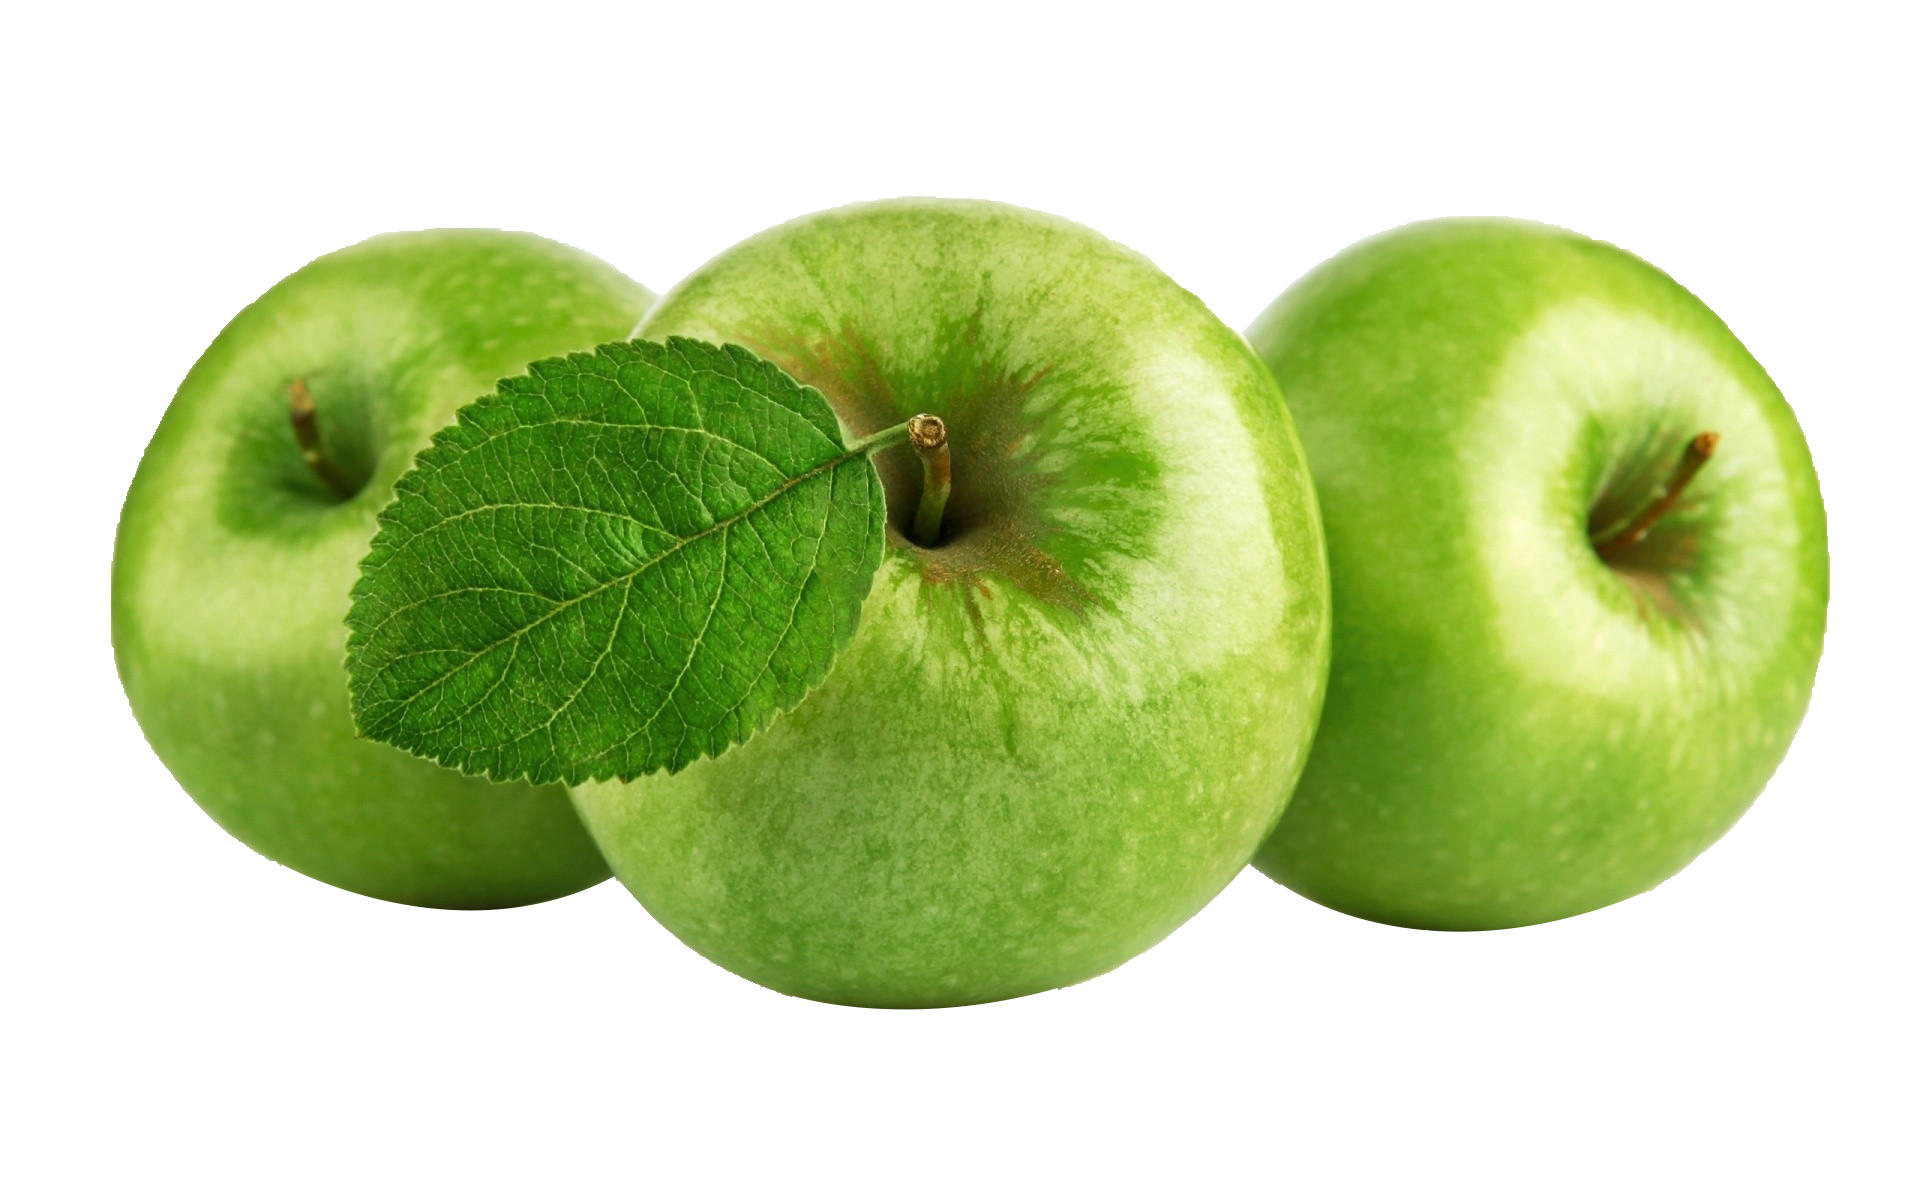 Crisp Apple Smoothie Three Juice Apples PNG Image